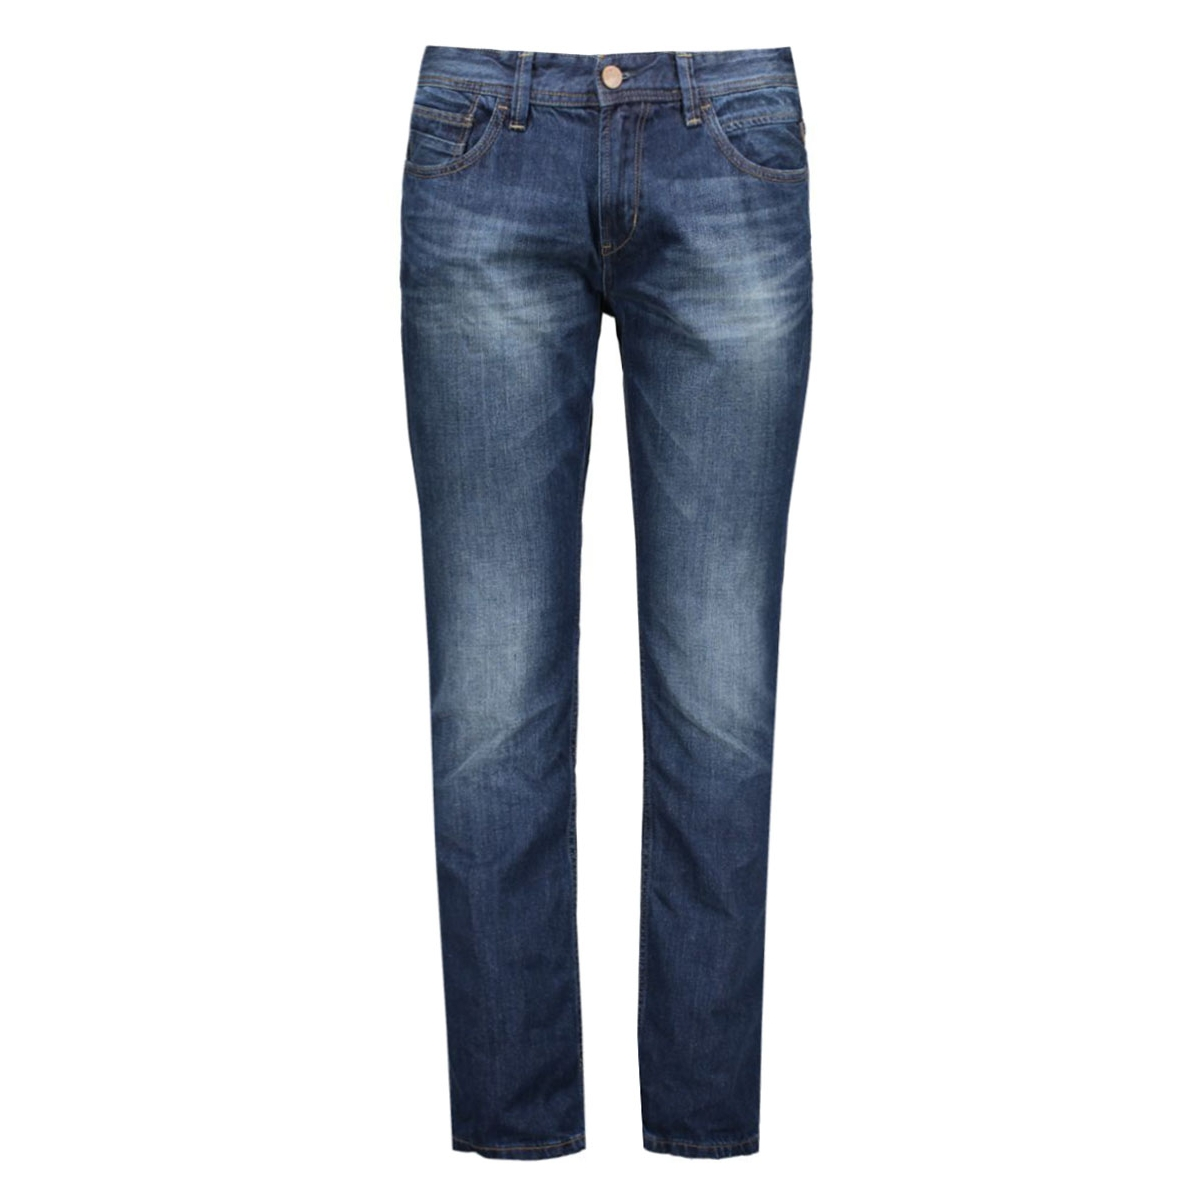 6205038.09.12 tom tailor jeans 1053